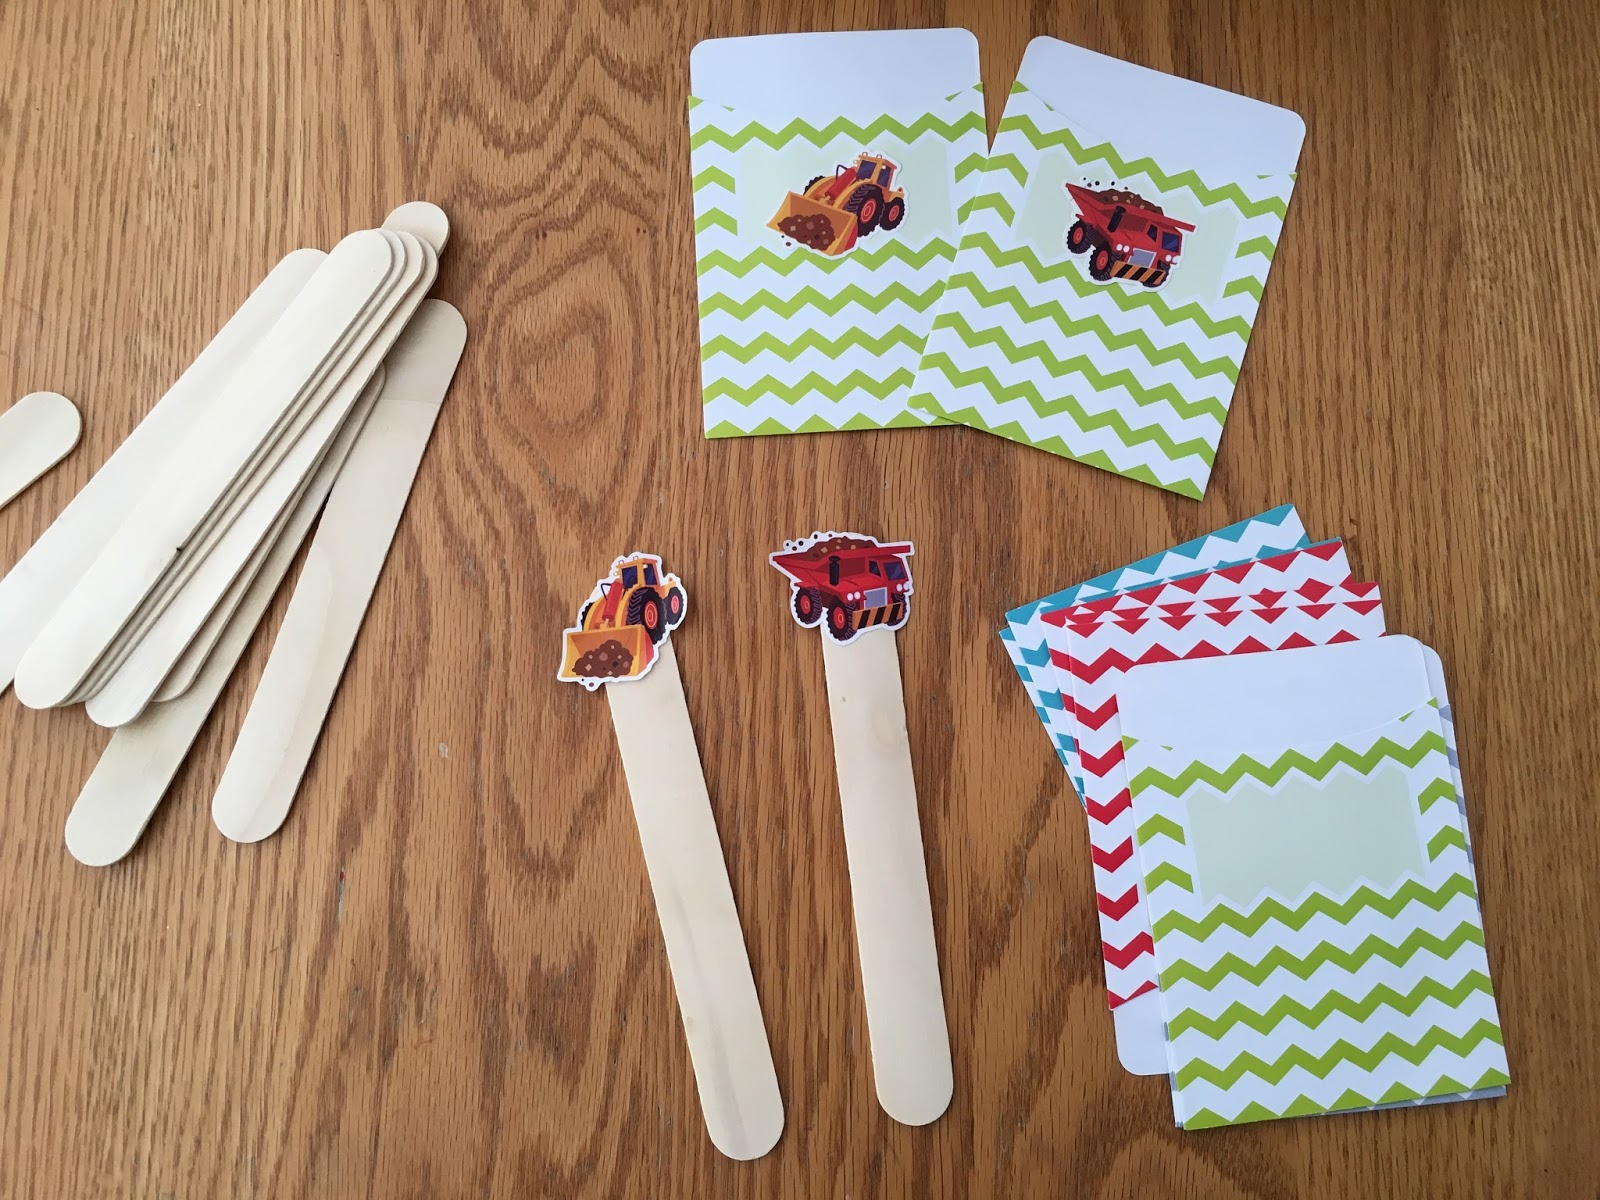 Crafts for a 3 year old - Craft Sets For 5 Year Olds Craft Sets For 3 Year Olds For Older Kids